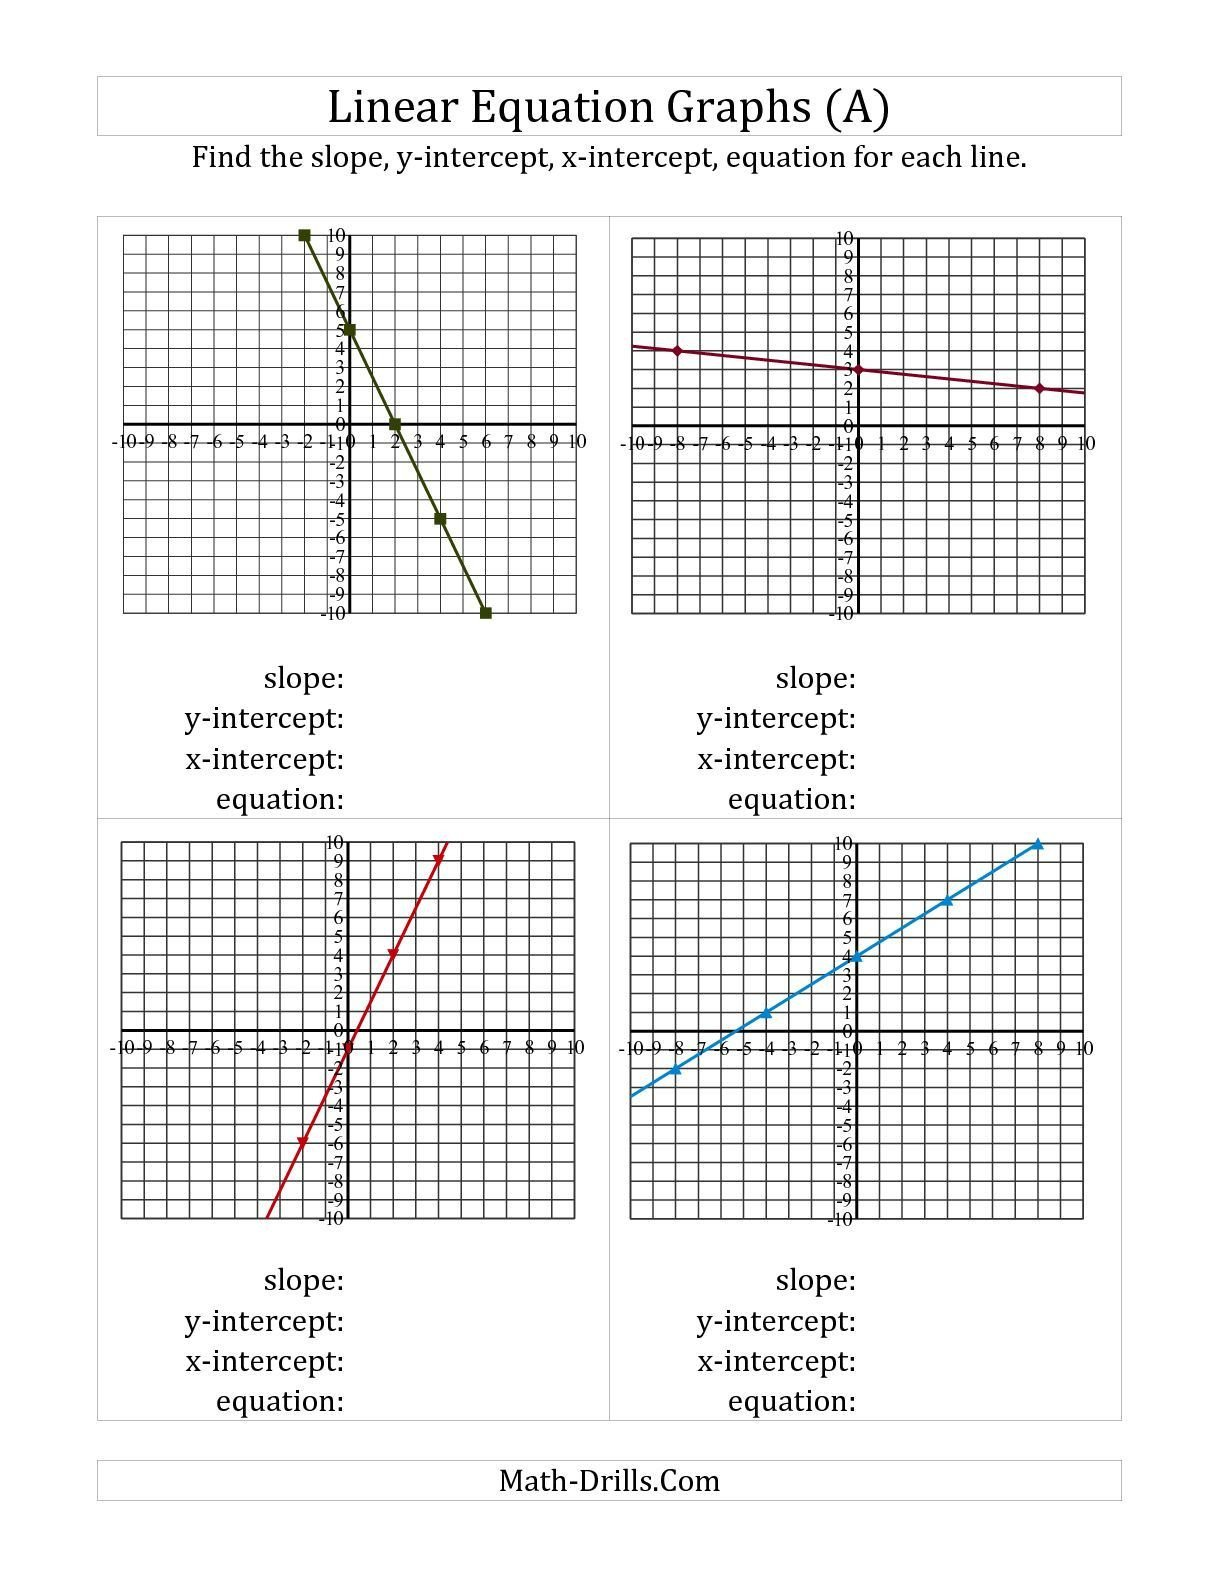 Linear Equations From Tables Worksheet Image Result for Linear Equations Worksheet